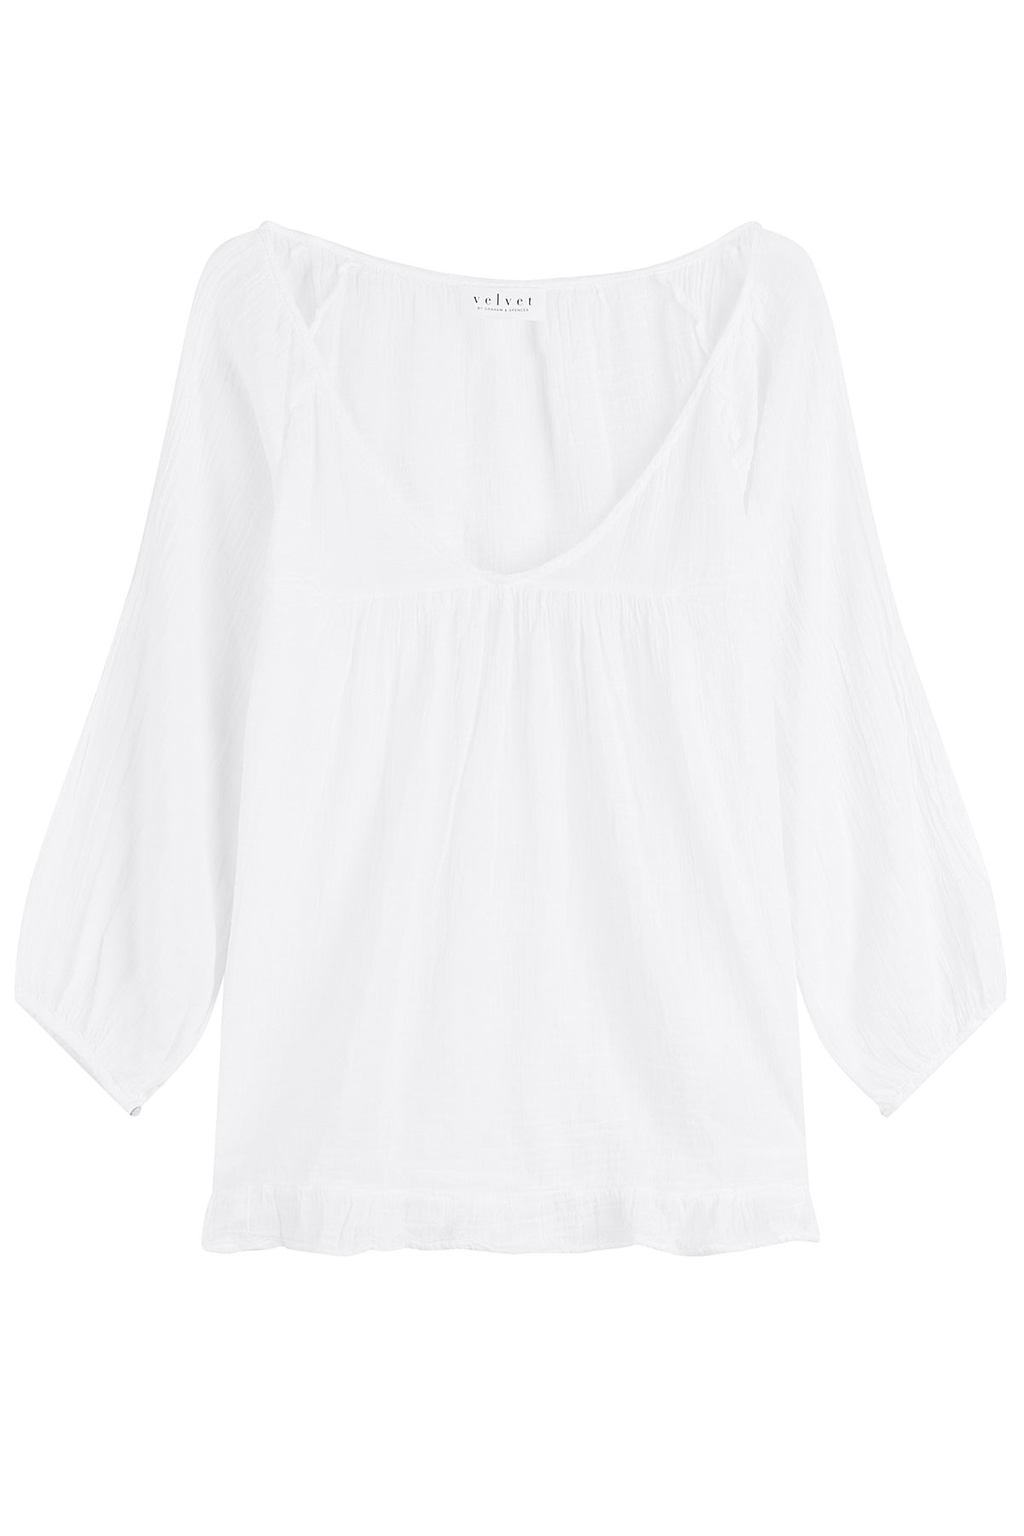 Cotton Blouse - neckline: slash/boat neckline; pattern: plain; sleeve style: kimono; style: blouse; predominant colour: white; occasions: casual, creative work; length: standard; fibres: cotton - 100%; fit: body skimming; sleeve length: long sleeve; texture group: cotton feel fabrics; pattern type: fabric; season: s/s 2016; wardrobe: basic